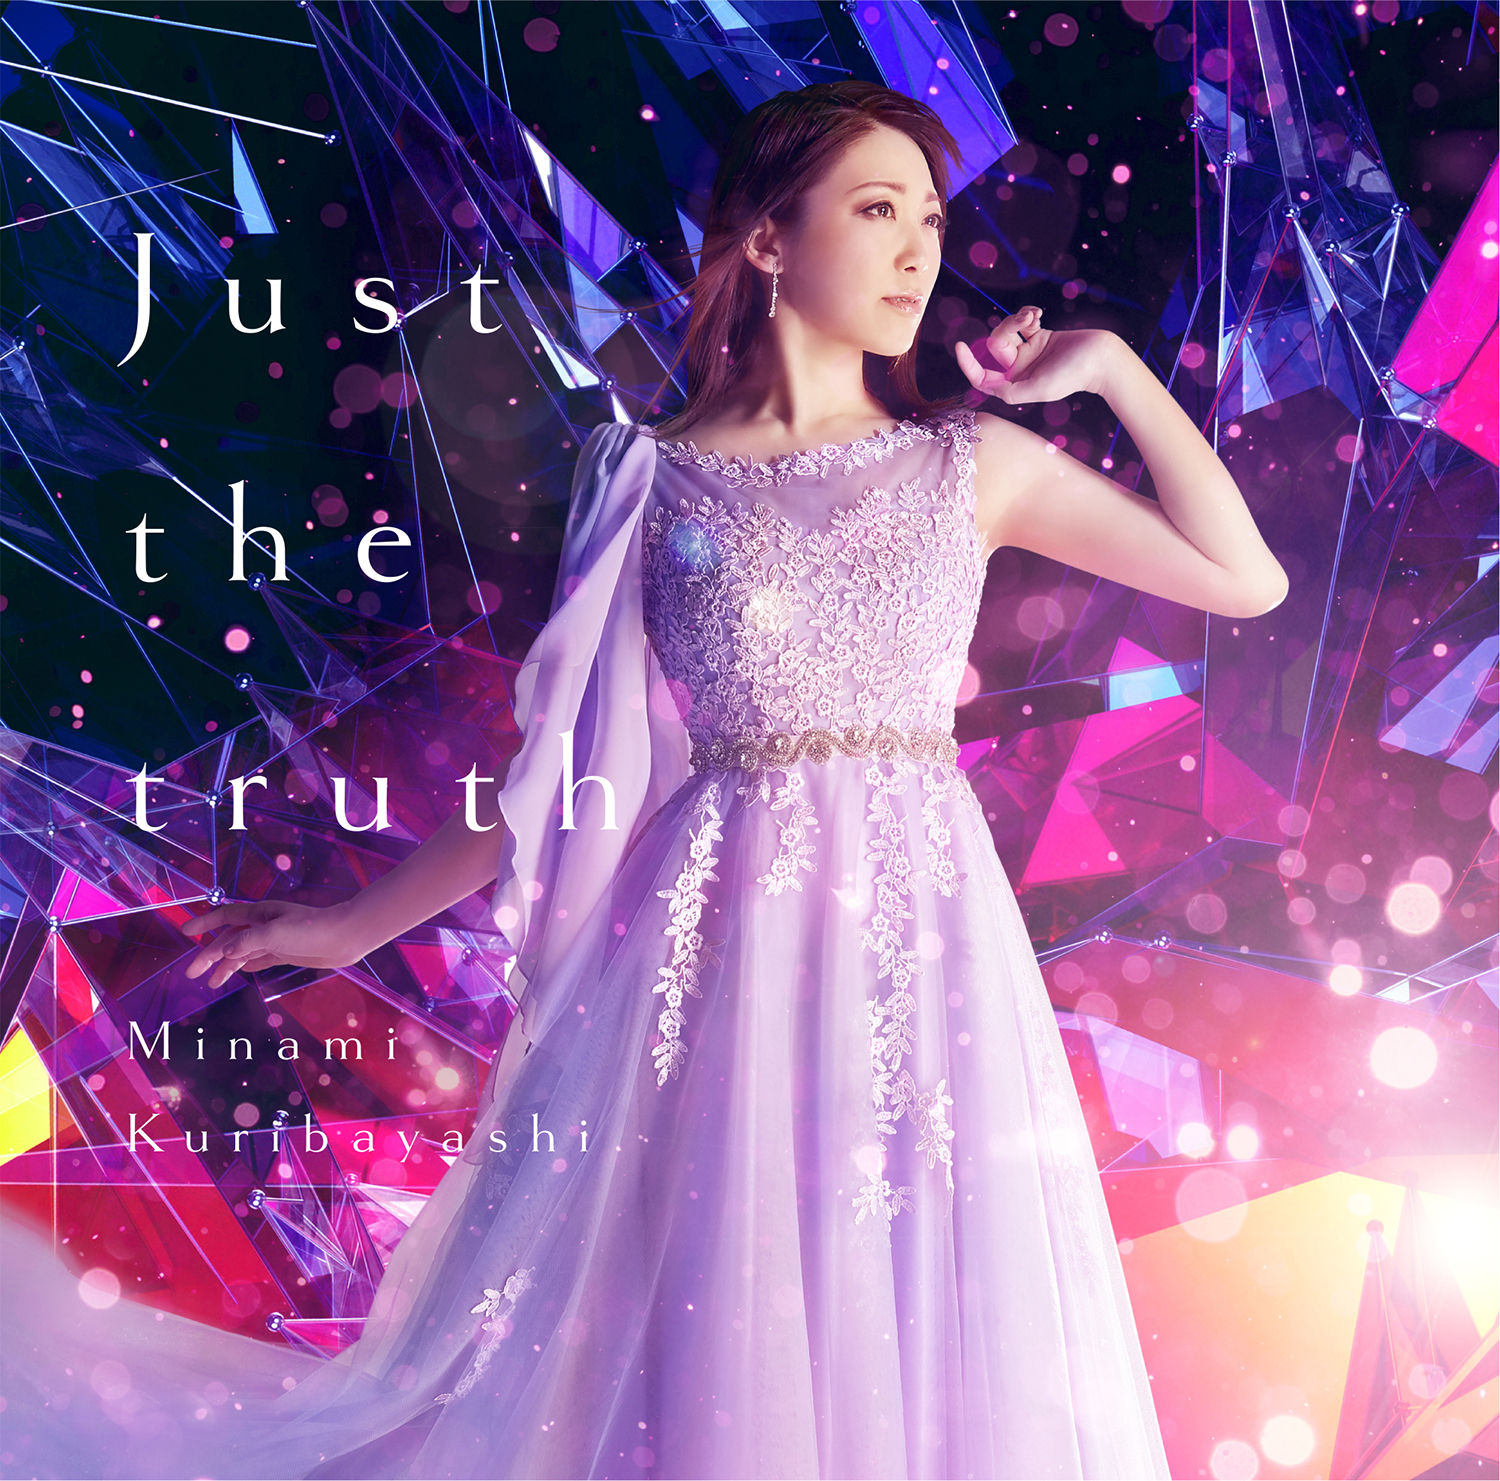 「Just the truth」【初回限定盤】